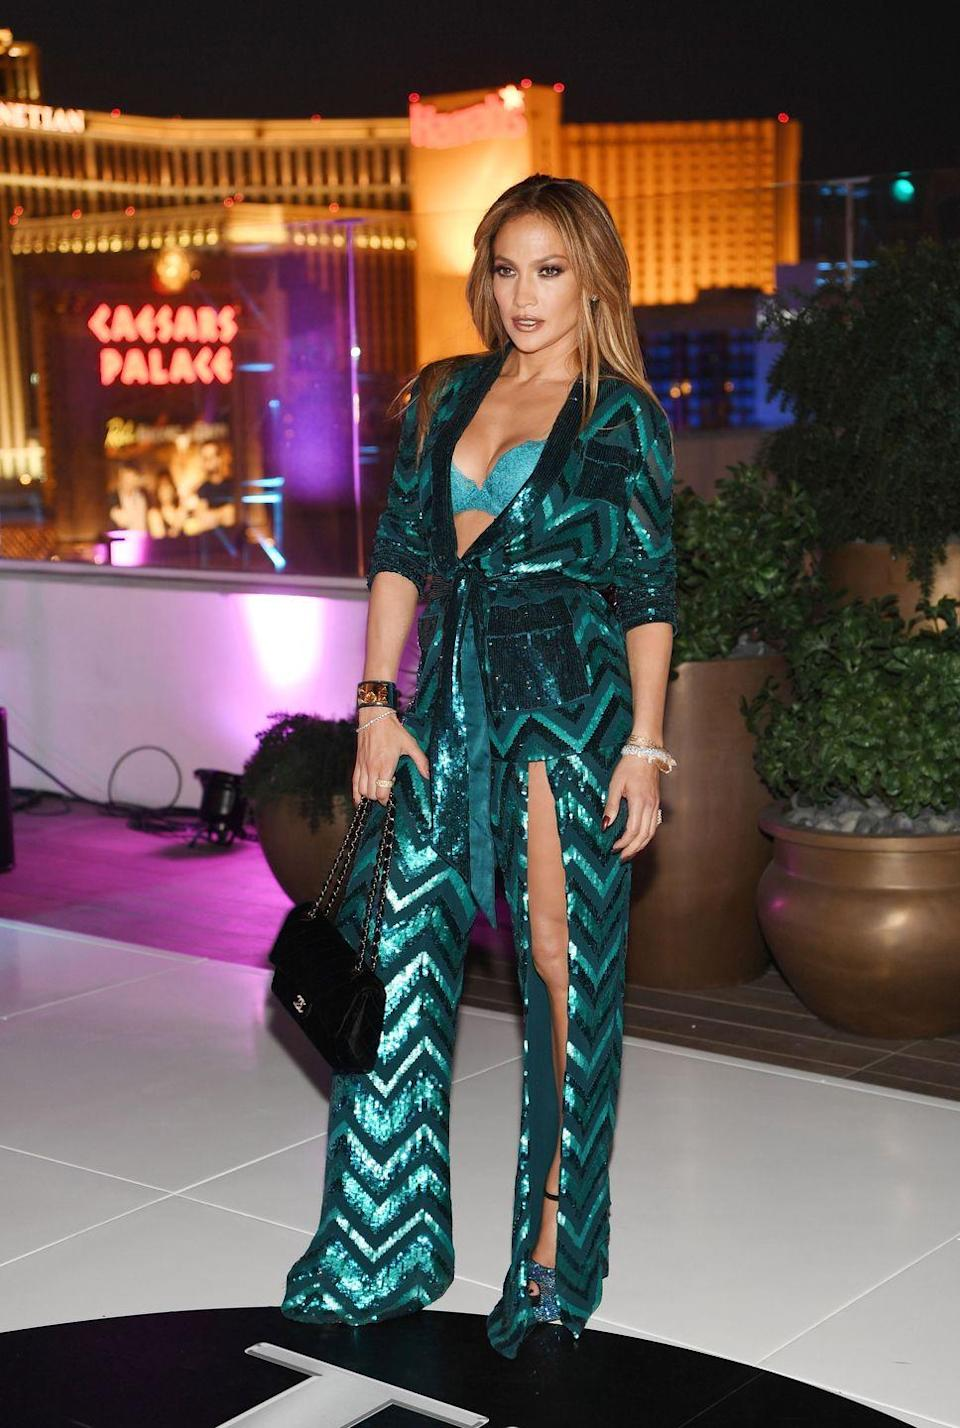 <p>J.Lo wore the green jumpsuit of dreams to celebrate her 47th birthday at Caesars Palace.</p>